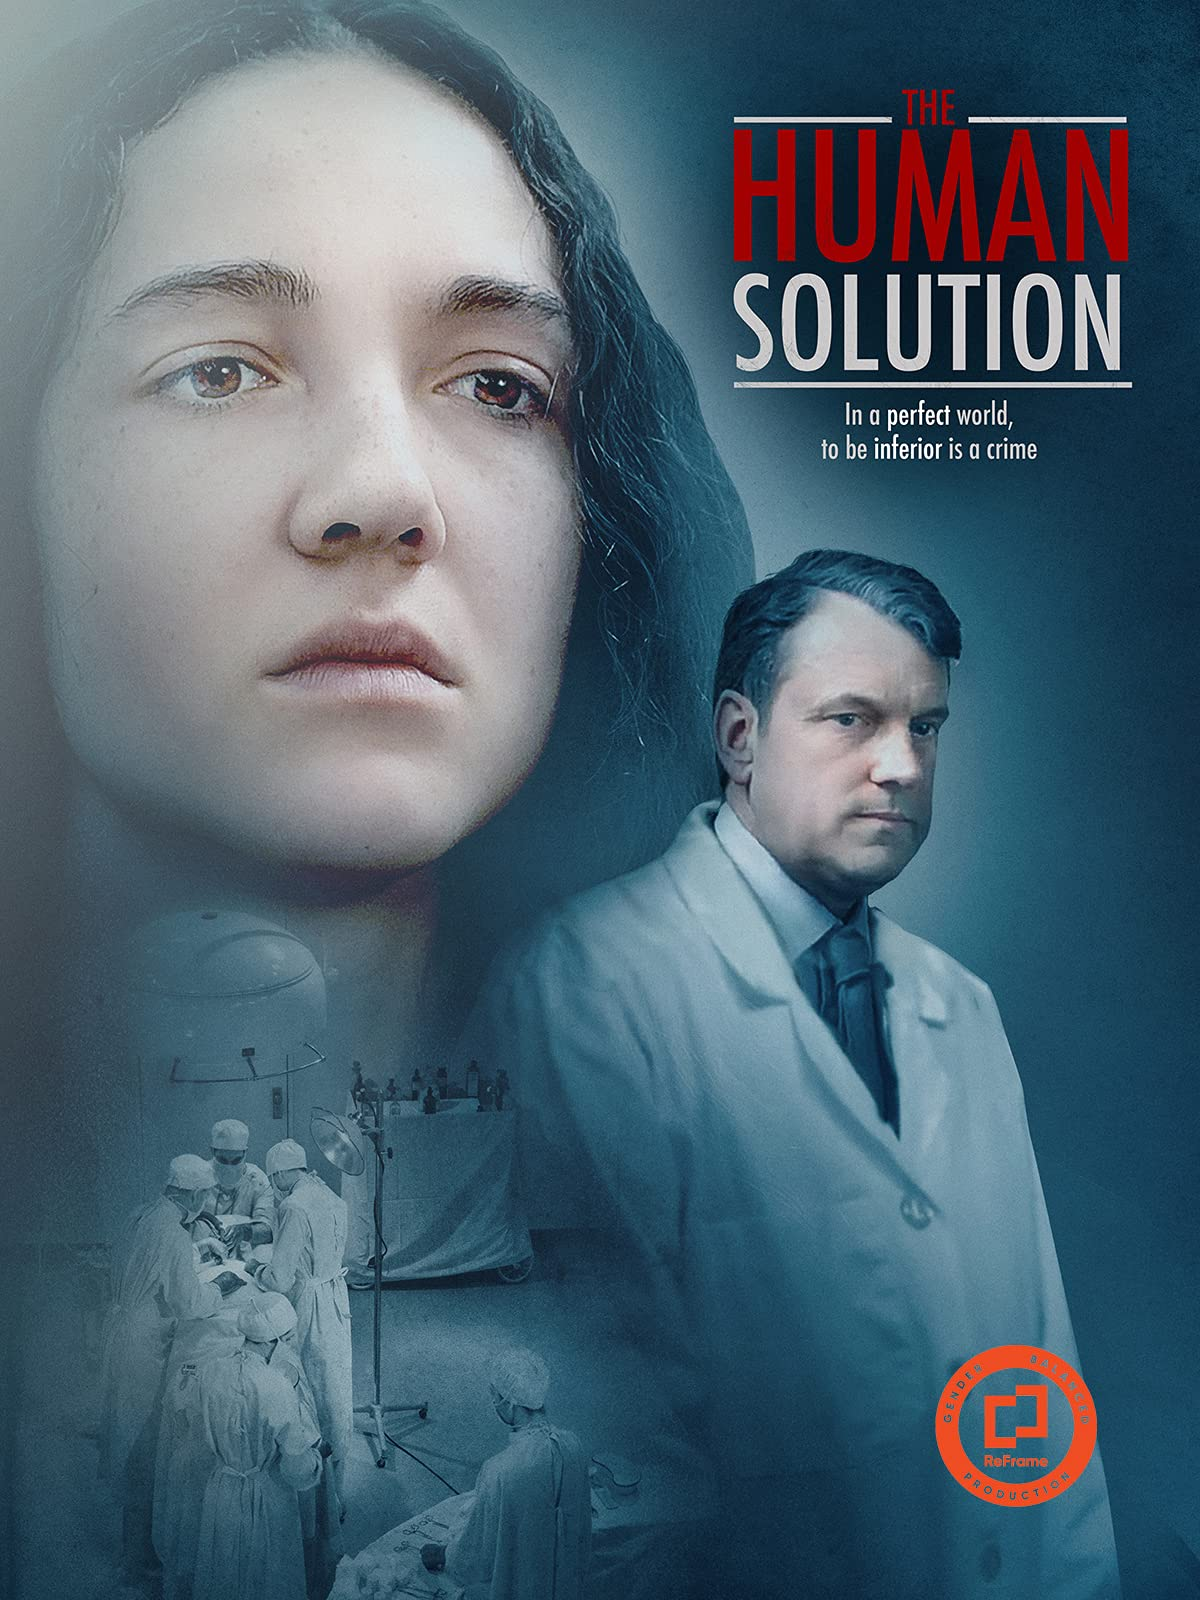 The Human Solution